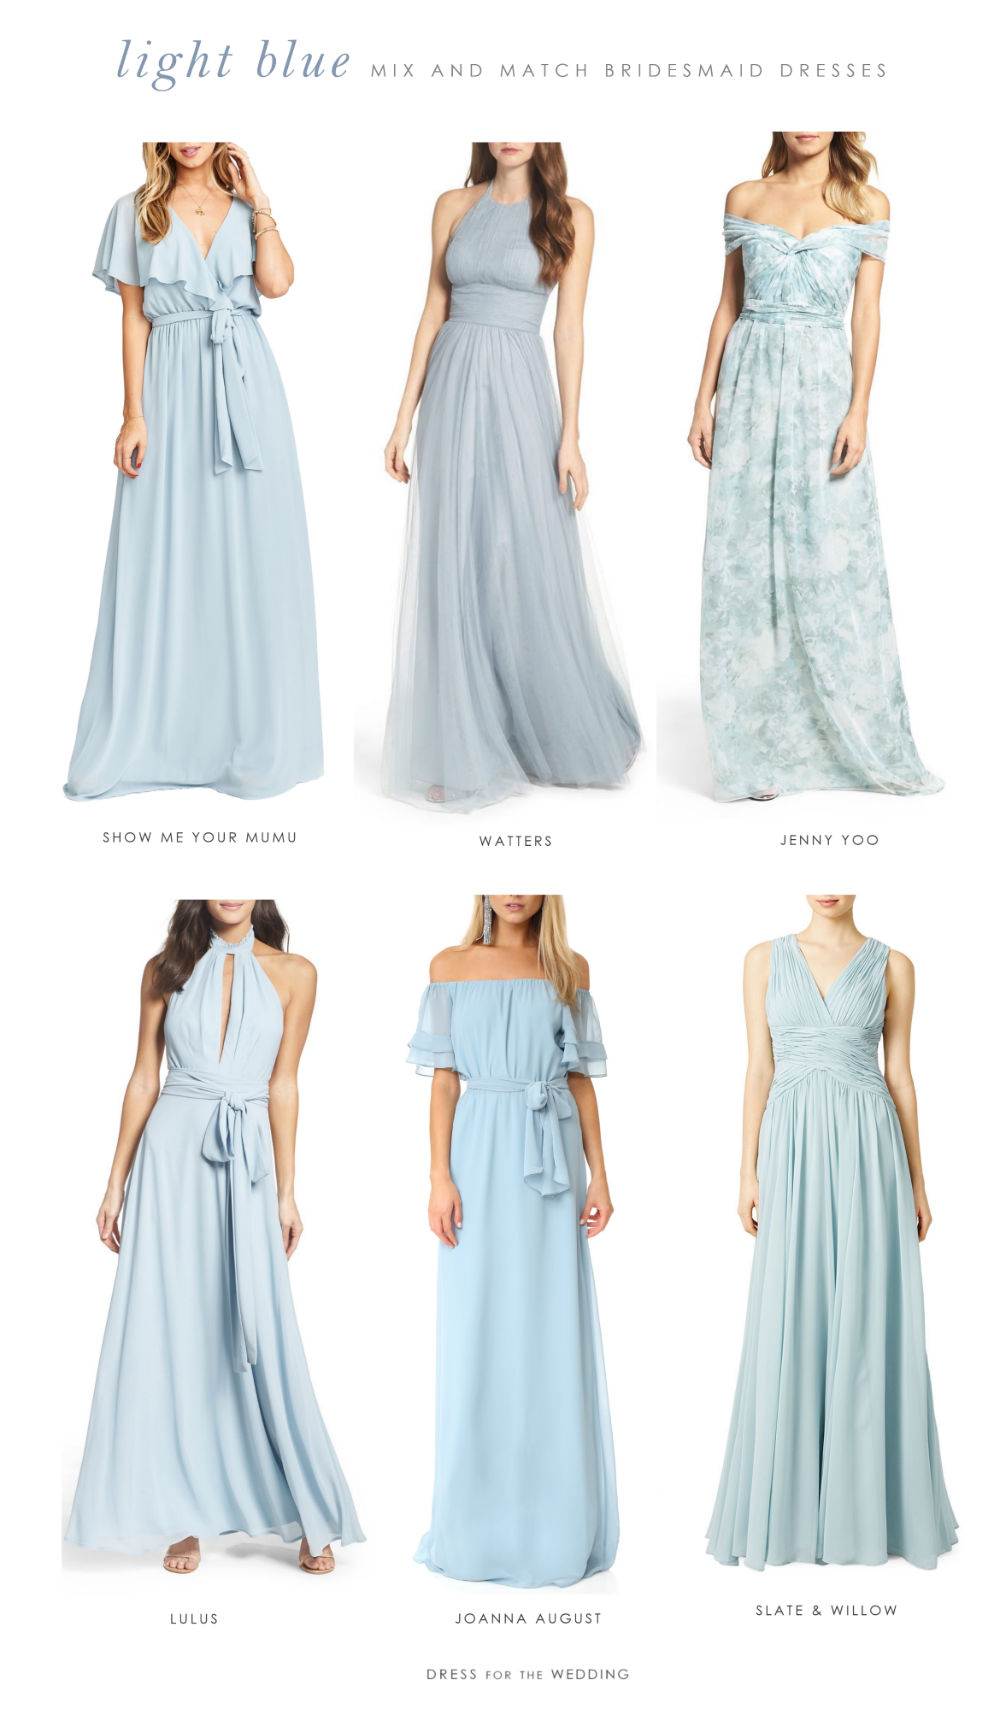 Light Blue Mix And Match Bridesmaid Dresses Dress For